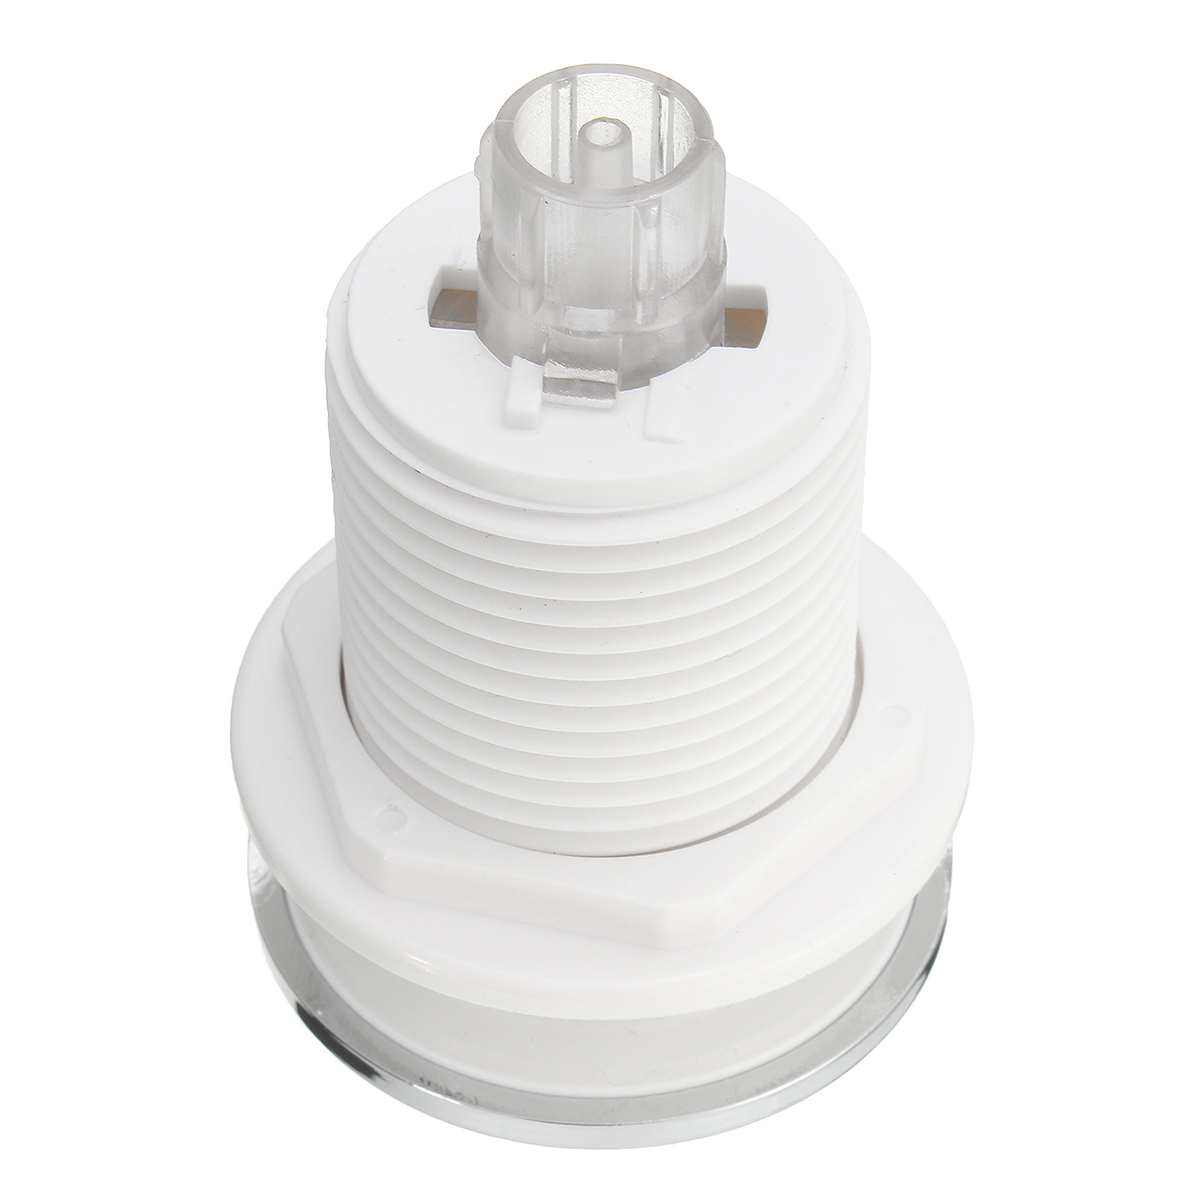 28/32mm Garbage Disposal Air Switch Unit Assembly Push Button Sink Top Pressure Switch